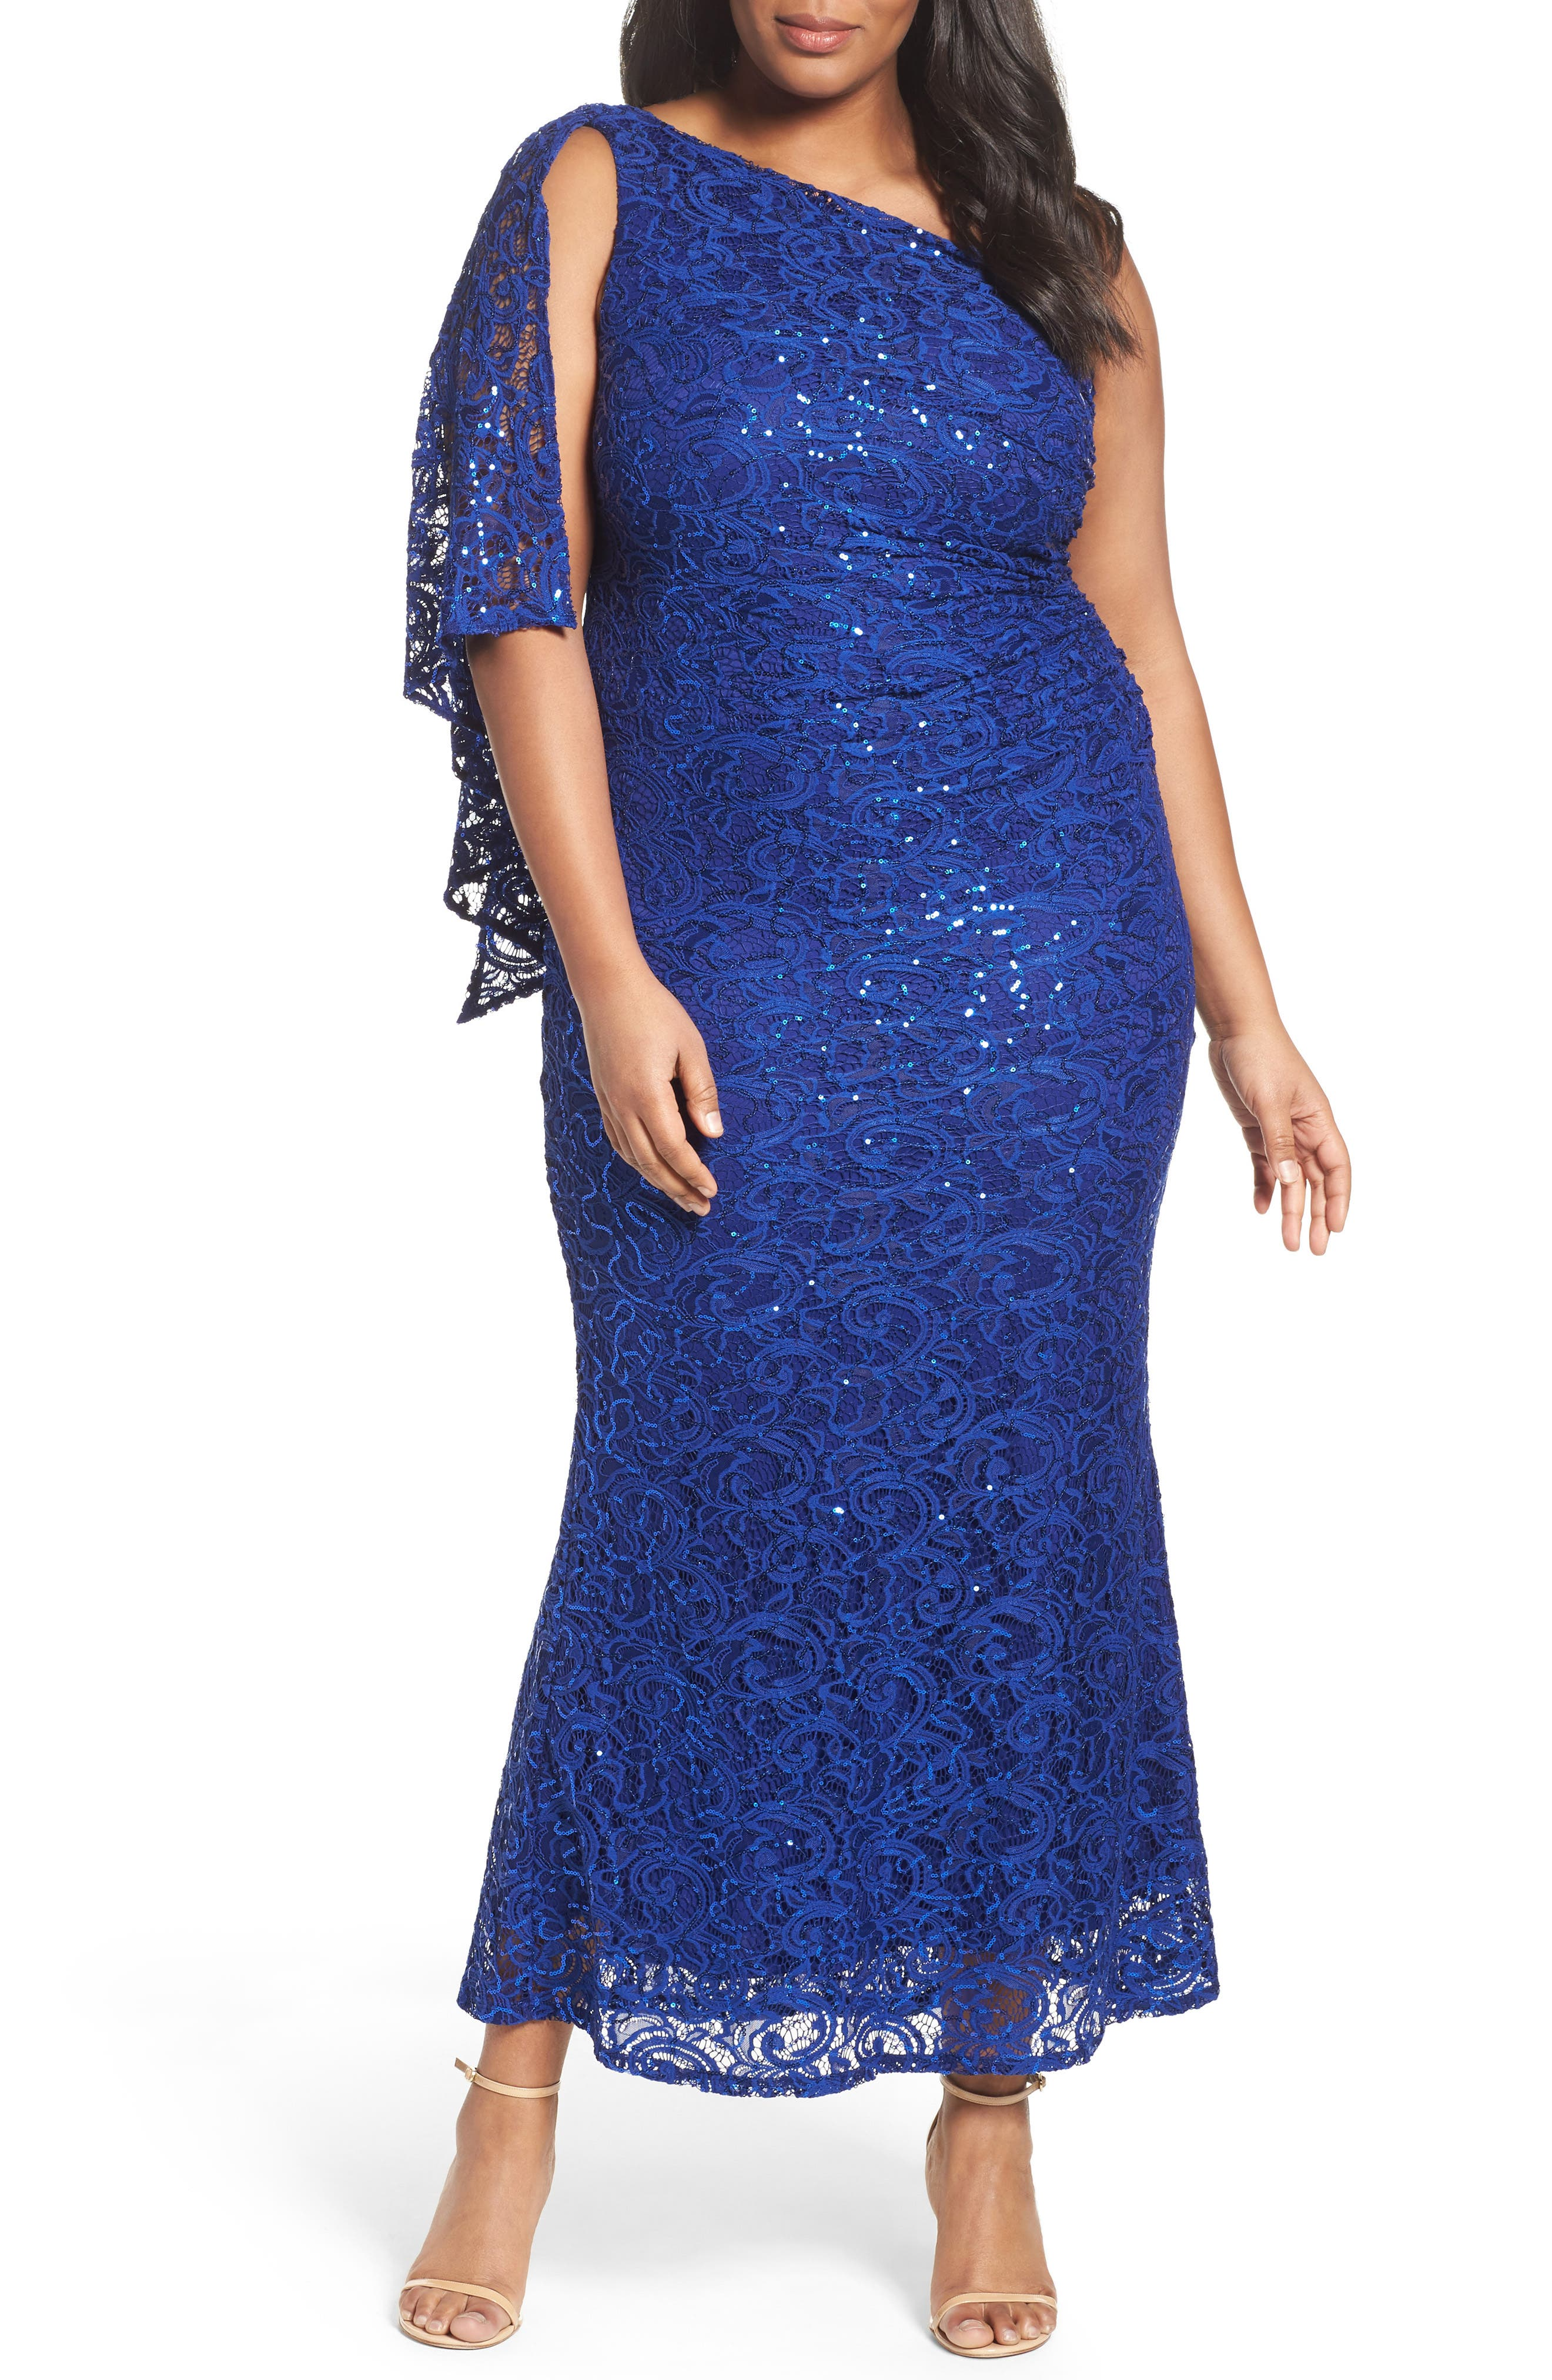 Alternate Image 1 Selected - Marina Sequin Lace One-Shoulder Gown (Plus Size)